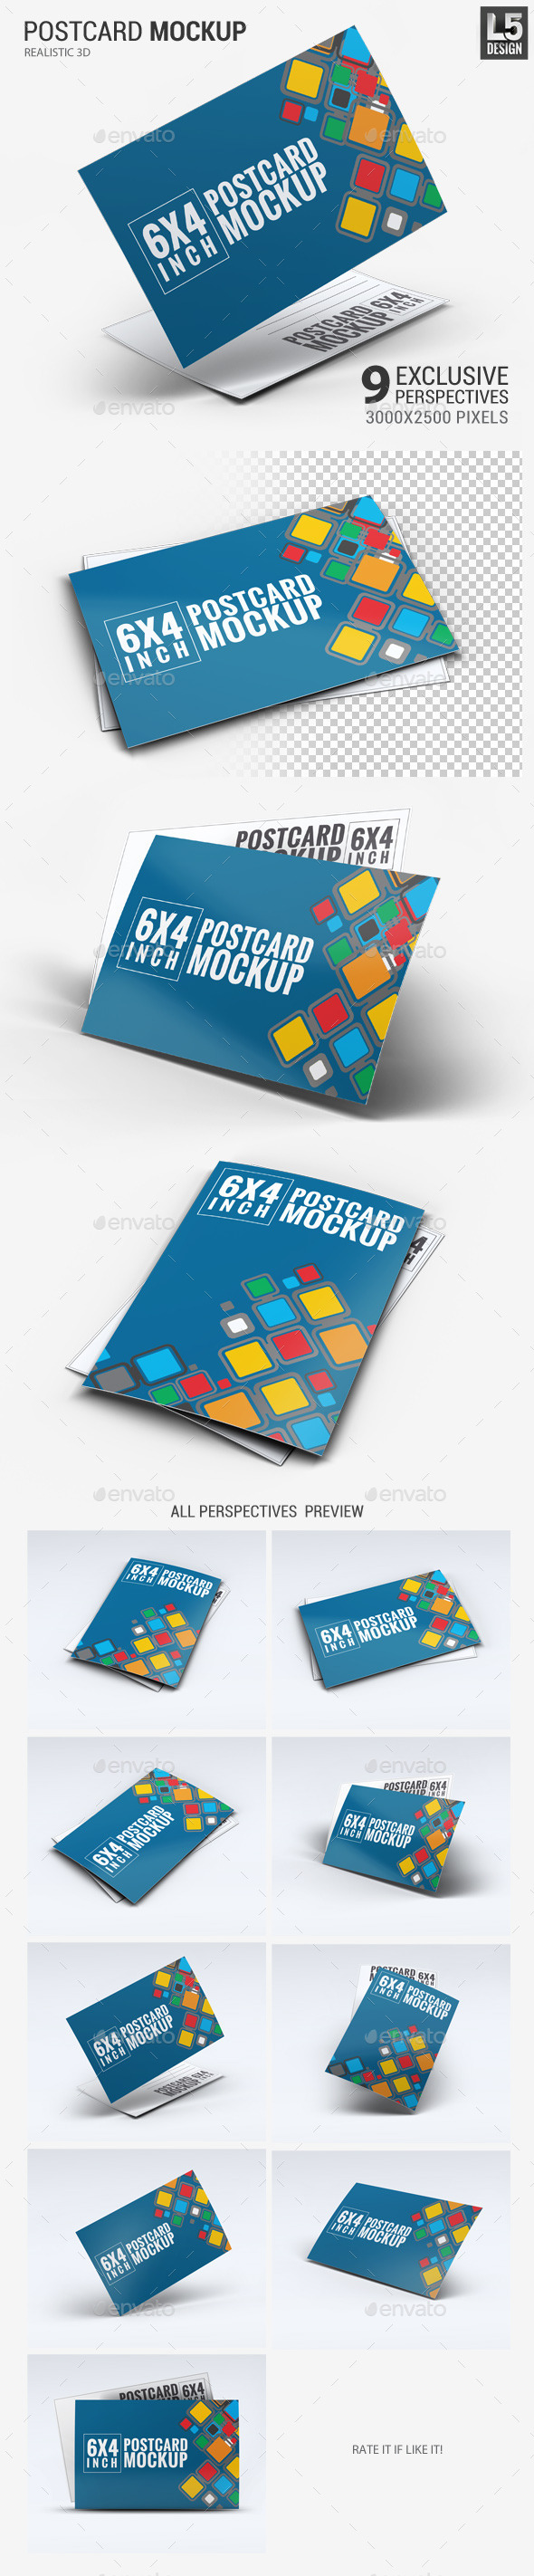 GraphicRiver Realistic 6x4 Postcard Mock-Up 11395257